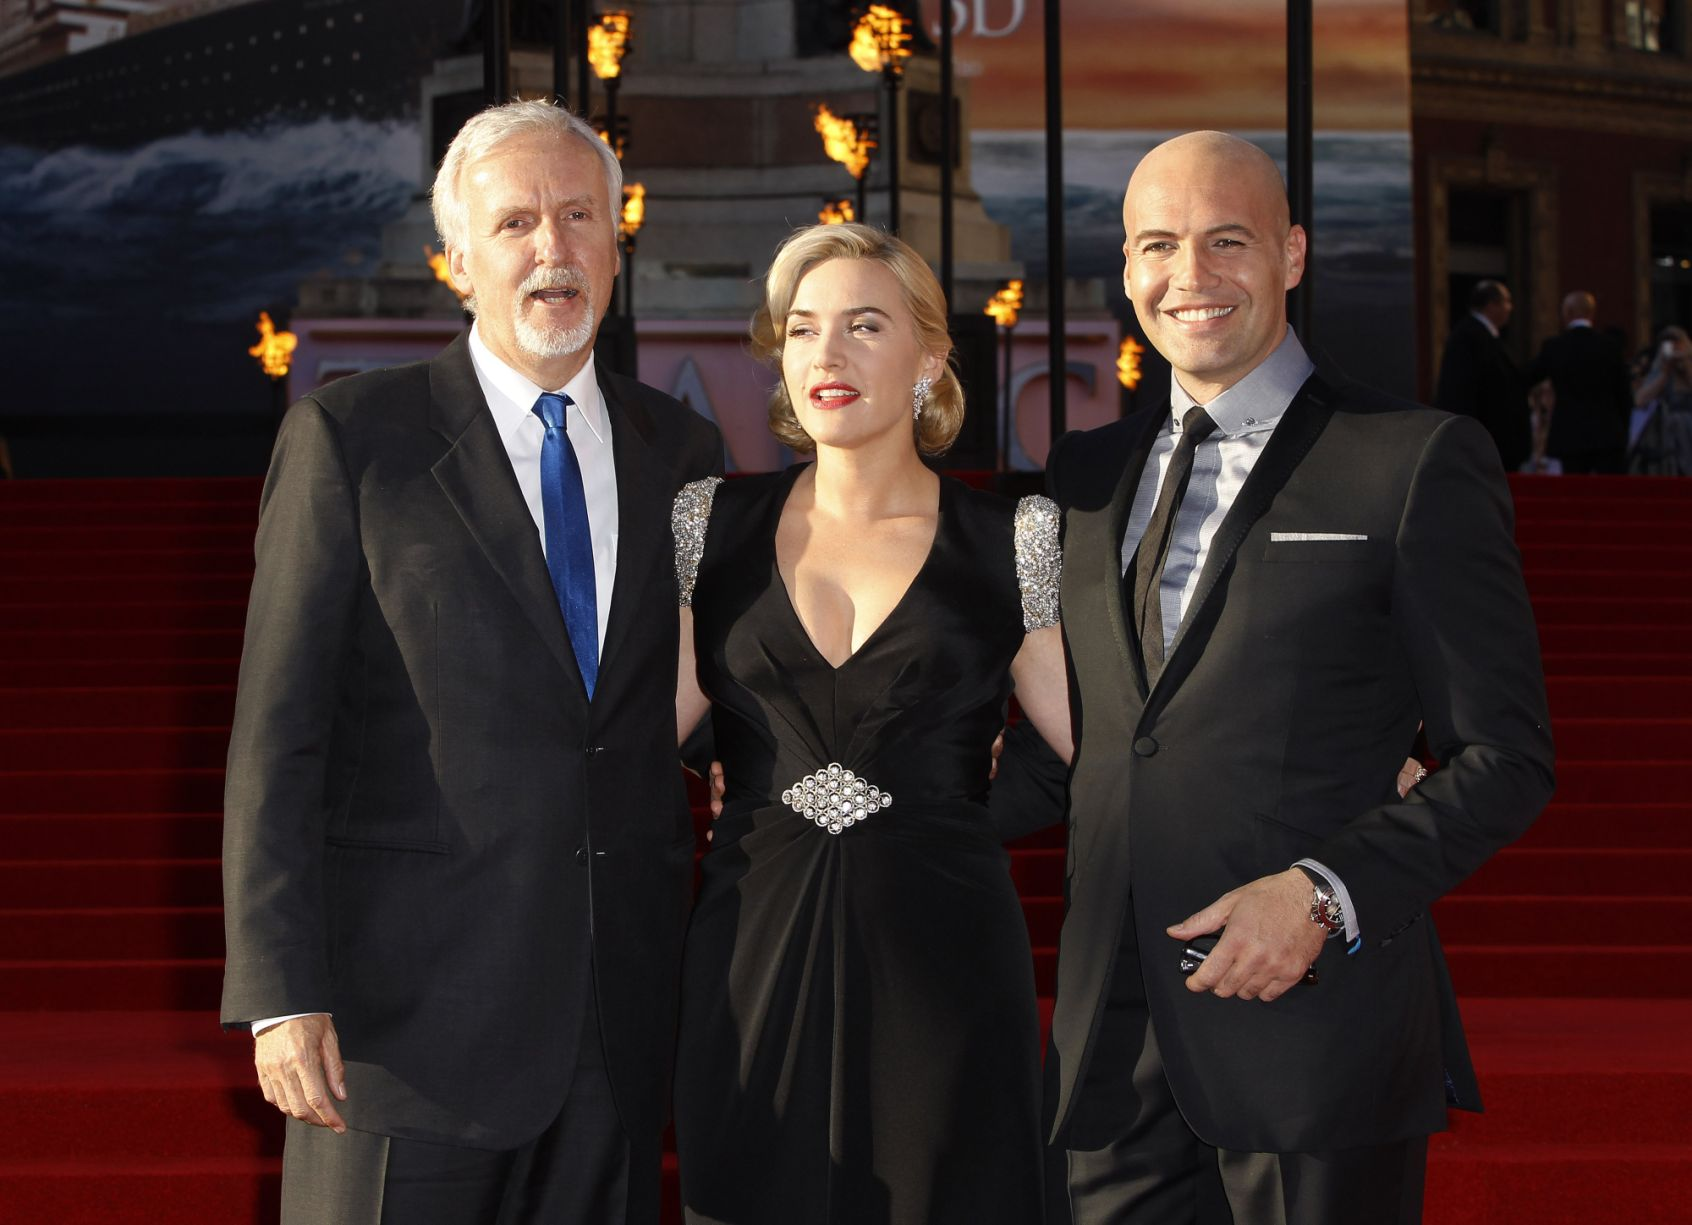 Kate Winslet and James Cameron showed Titanic in London in 3D 03/29/2012 38